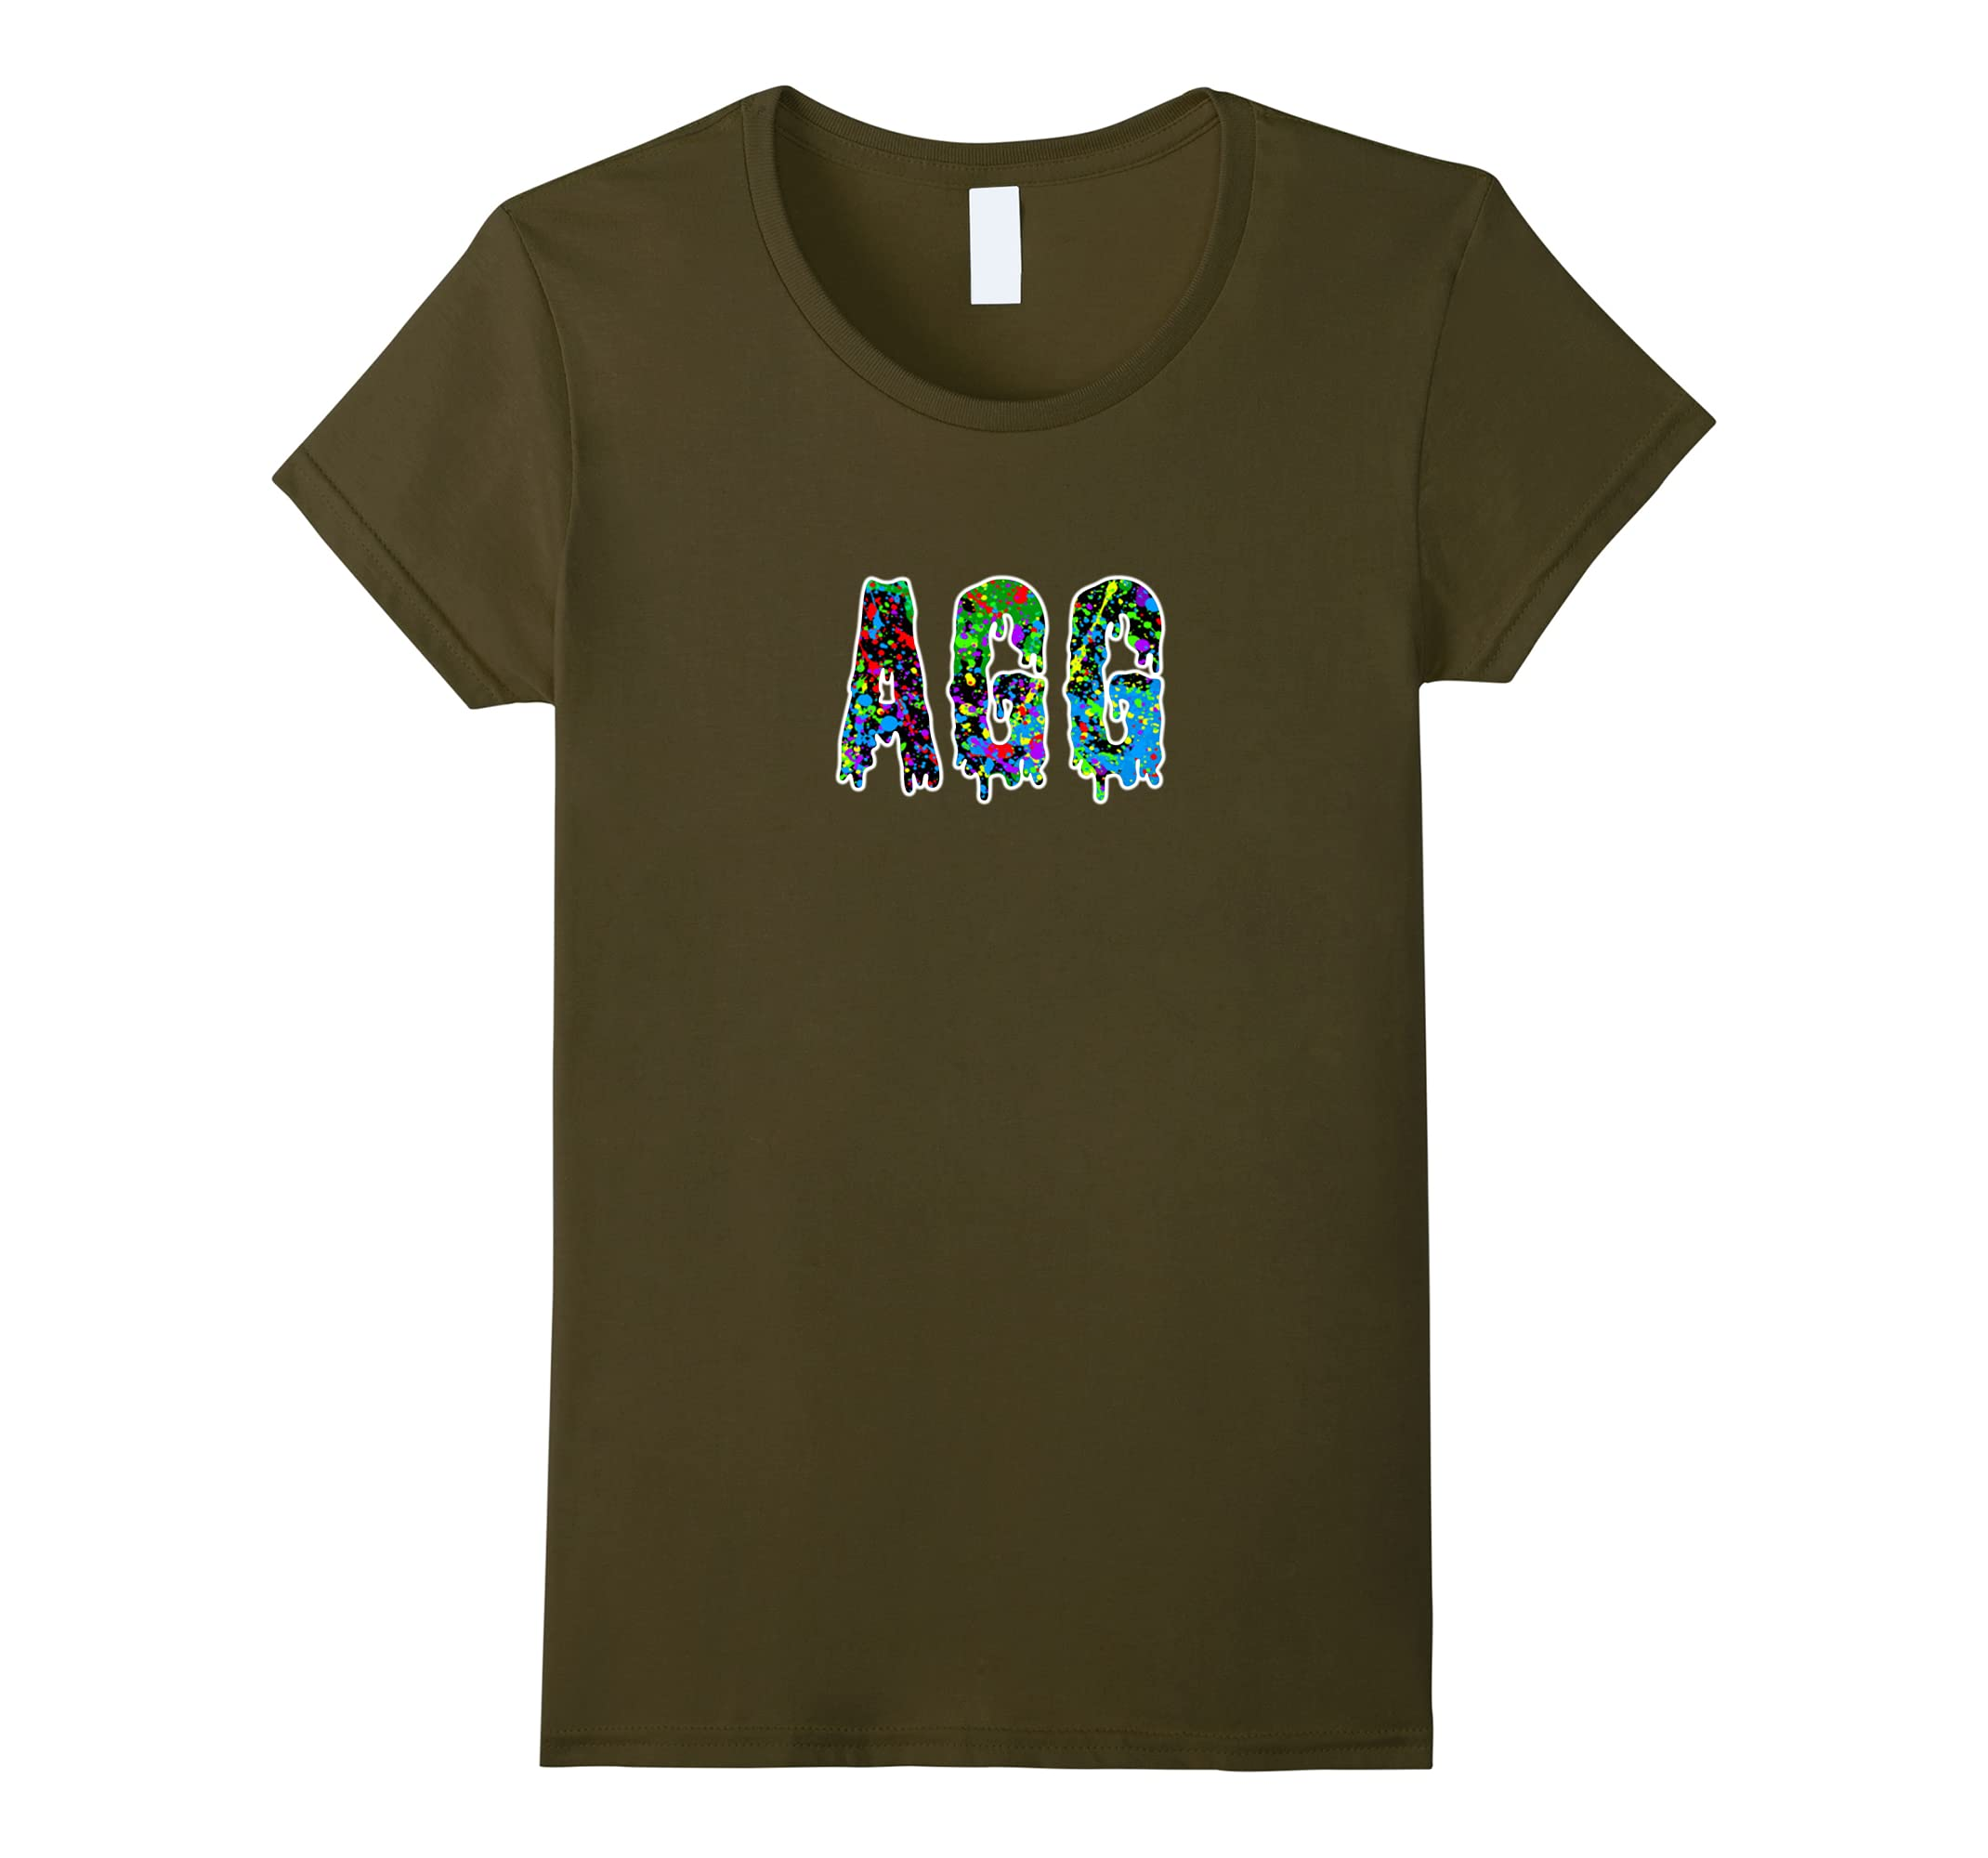 Amazon com: AGG Aggro Clean Paintball T-Shirt: Clothing